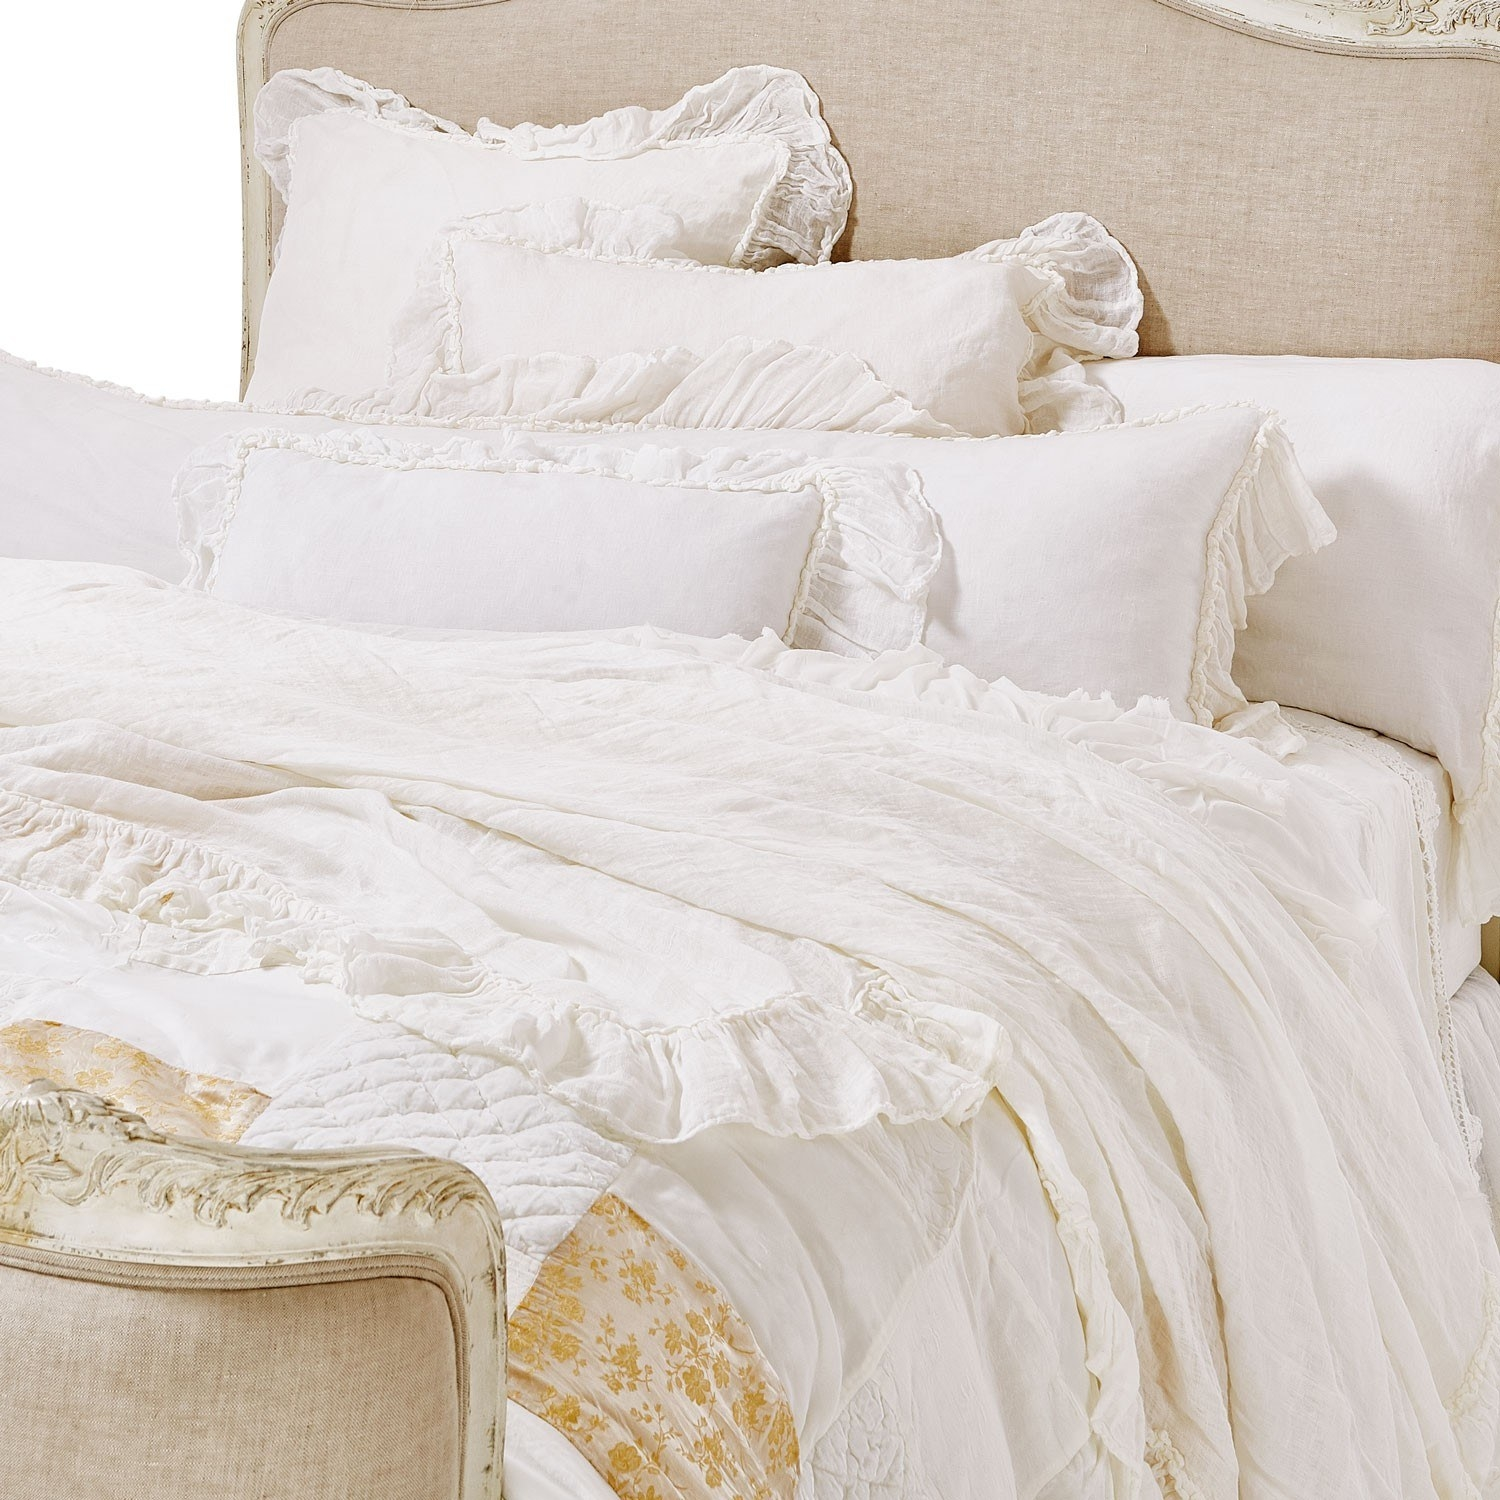 Best Place To Buy A Bed Online: 22 Of The Best Places To Buy Bedding Online